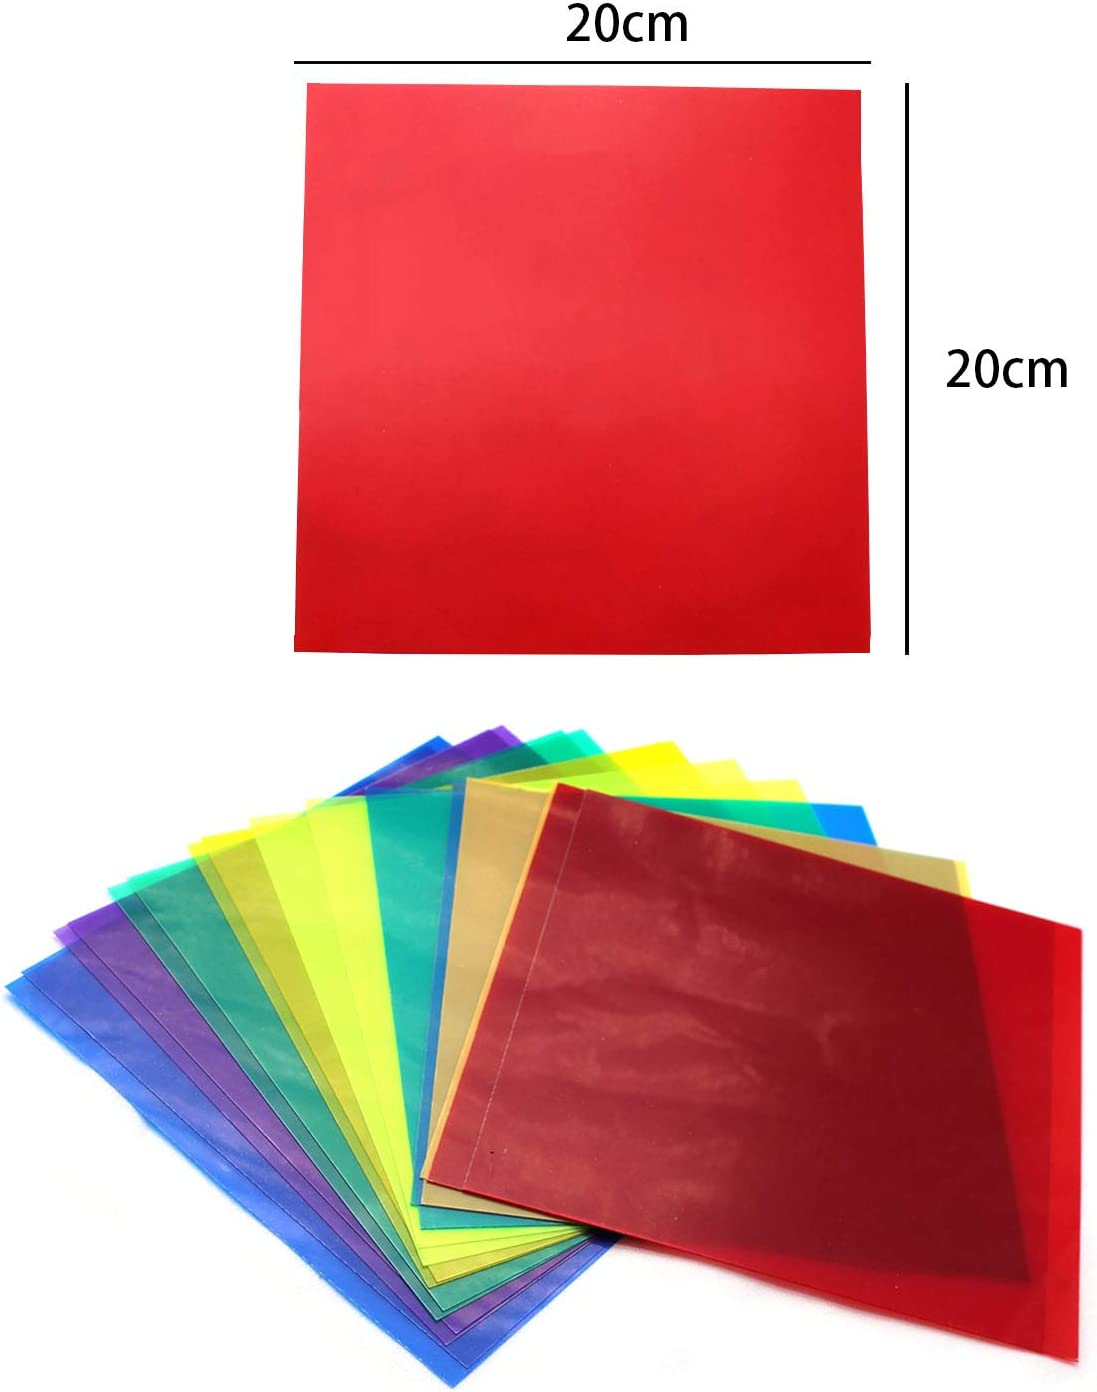 16 Pack Colored Overlays Transparency Color Film Plastic Sheets Correction Gel Light Filter Sheet,20 by 20cm,8 Assorted Colors